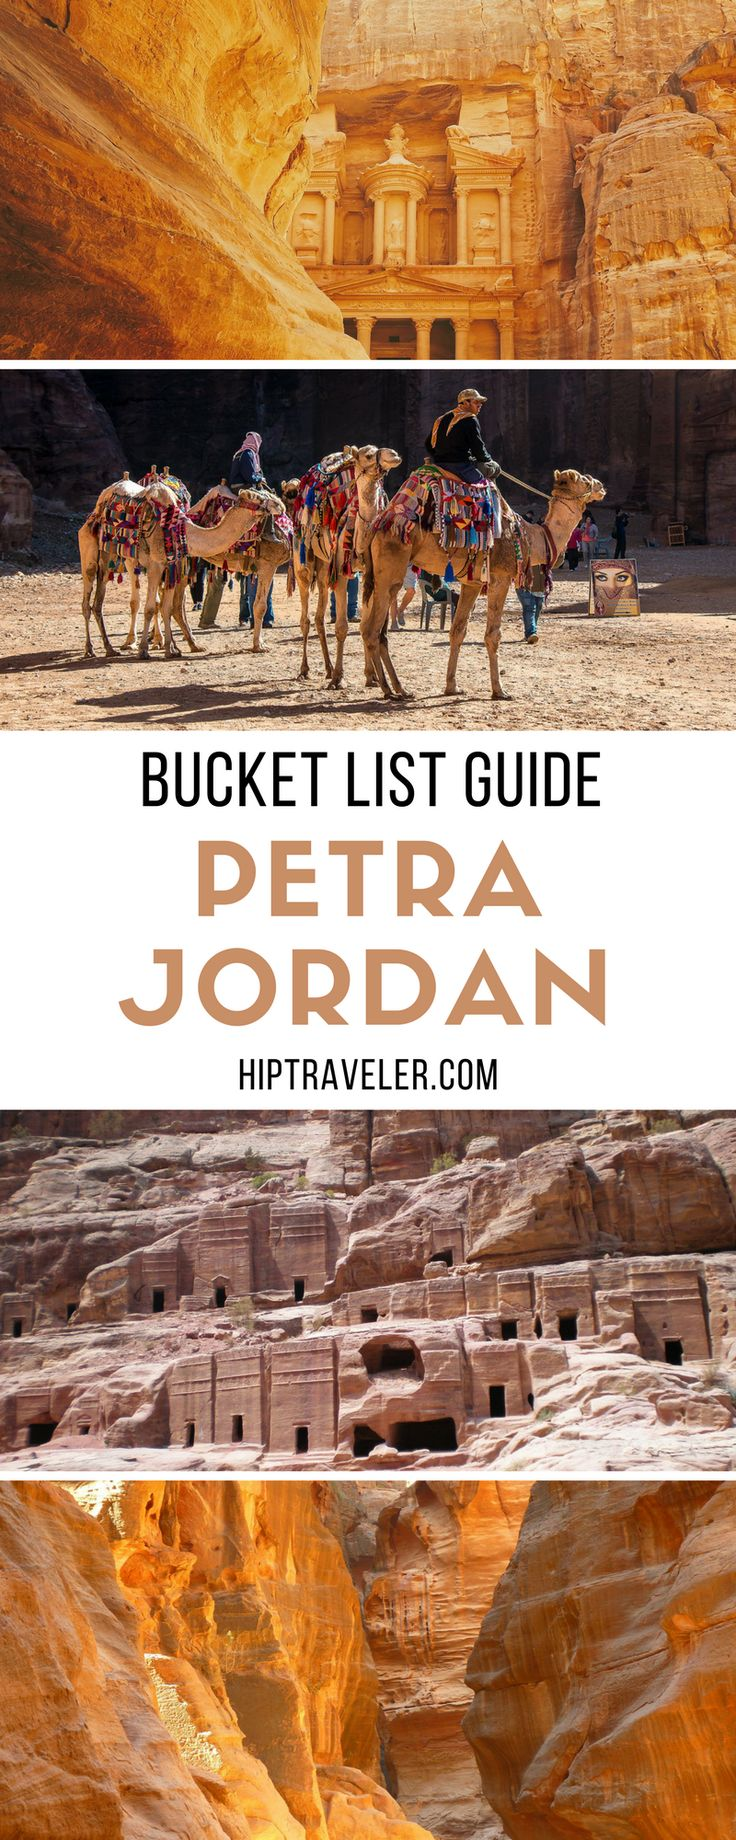 A bucket list worthy guide to visiting Petra, Jordan. Where to stay, what to eat, and how to experience the best of Petra, Al Siq and the Treasury. Travel in the Middle East. | Blog by HipTraveler: Bookable Travel Stories from the World's Top Travelers